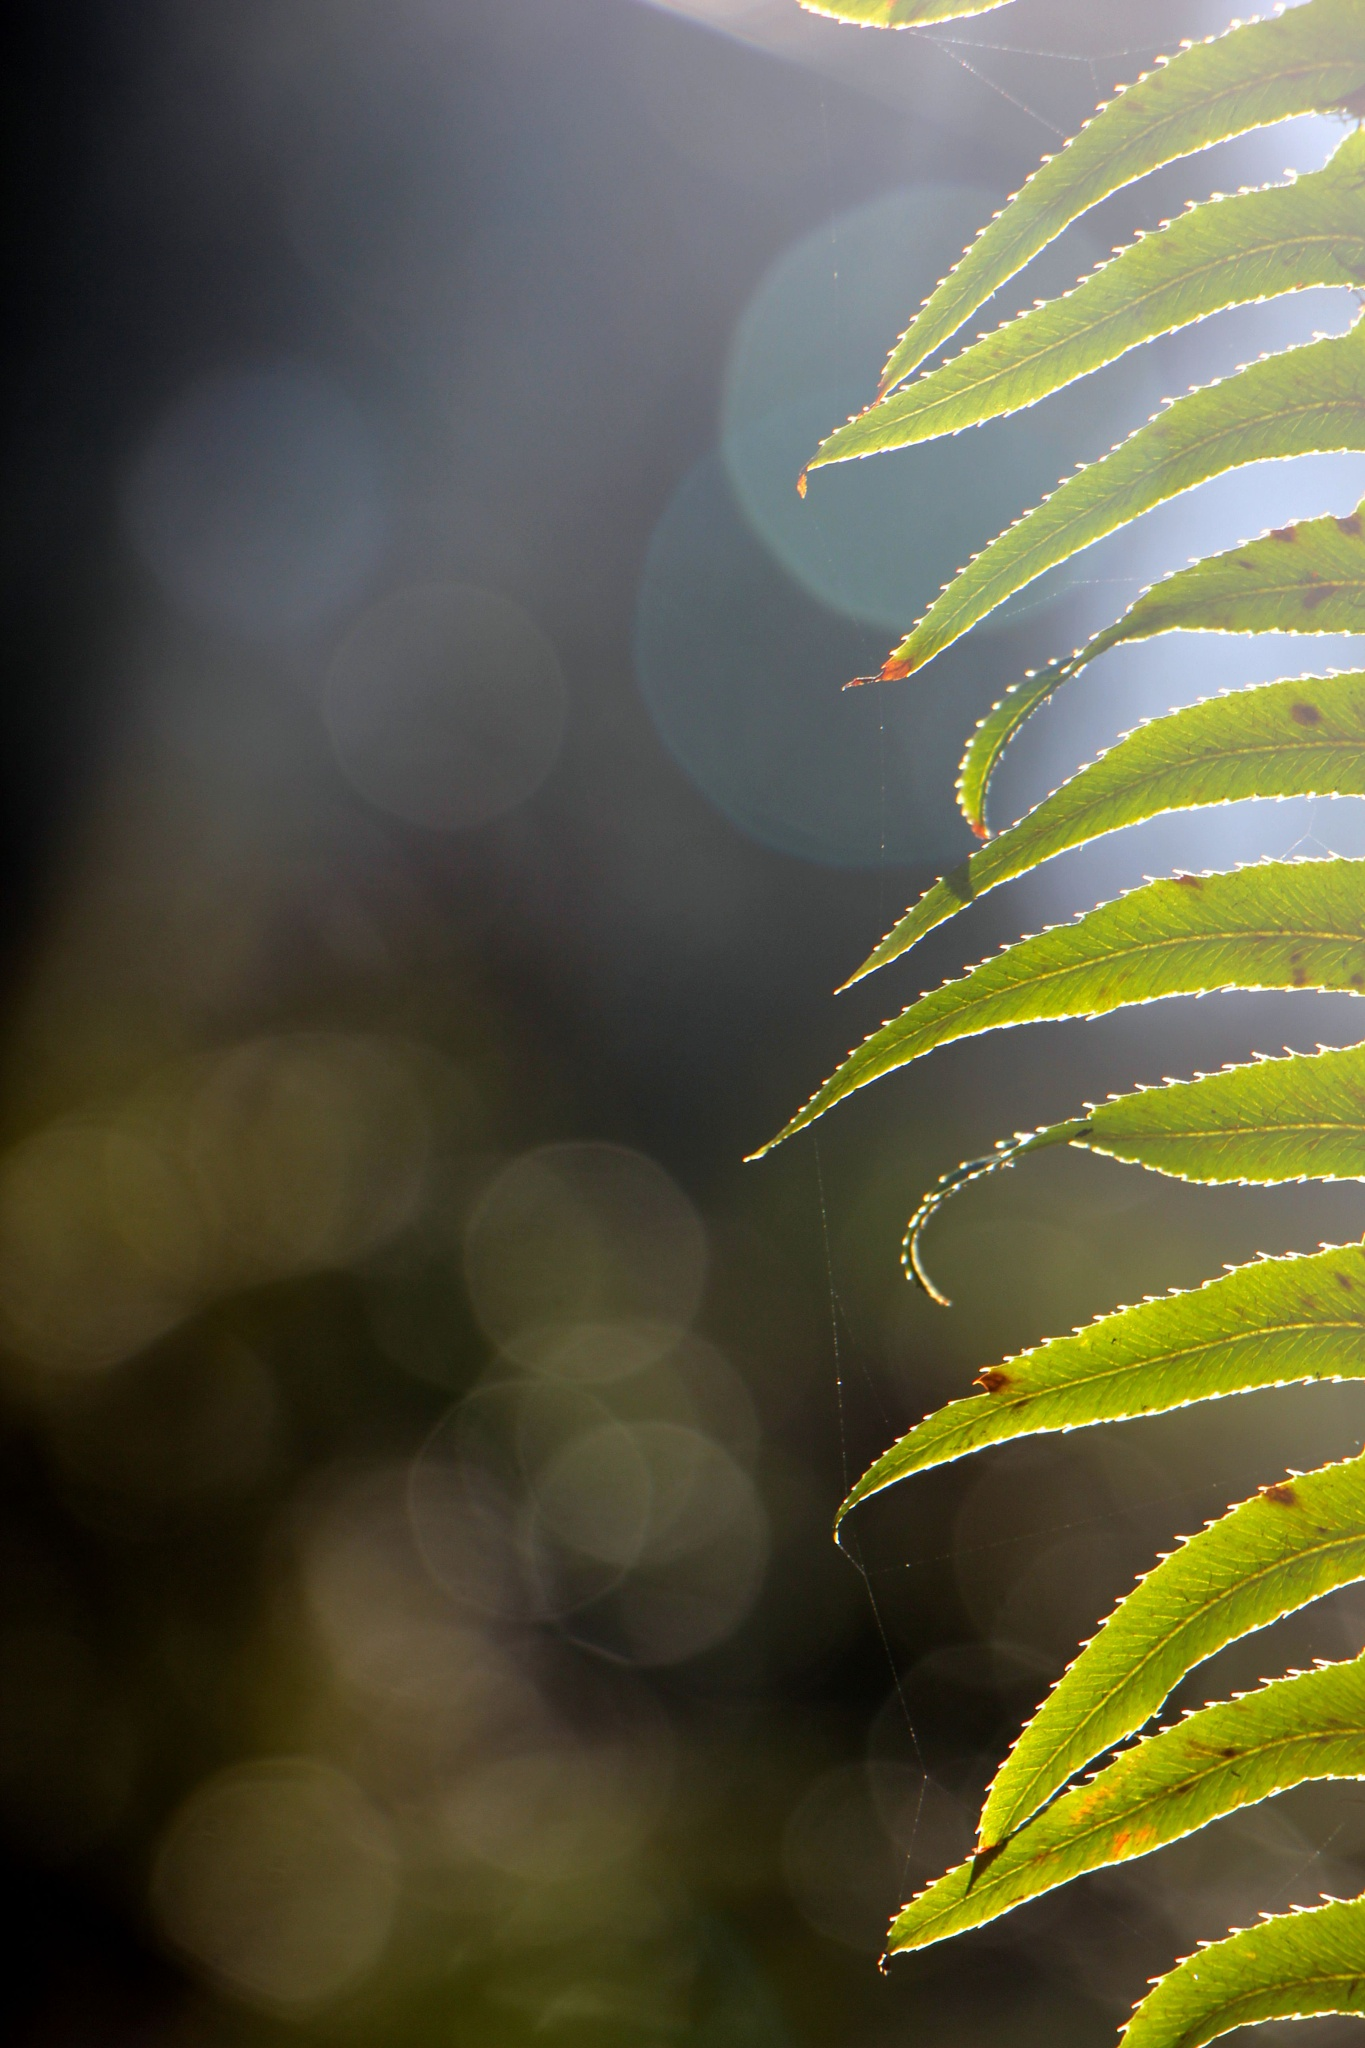 Fern Leaves by Mend30012